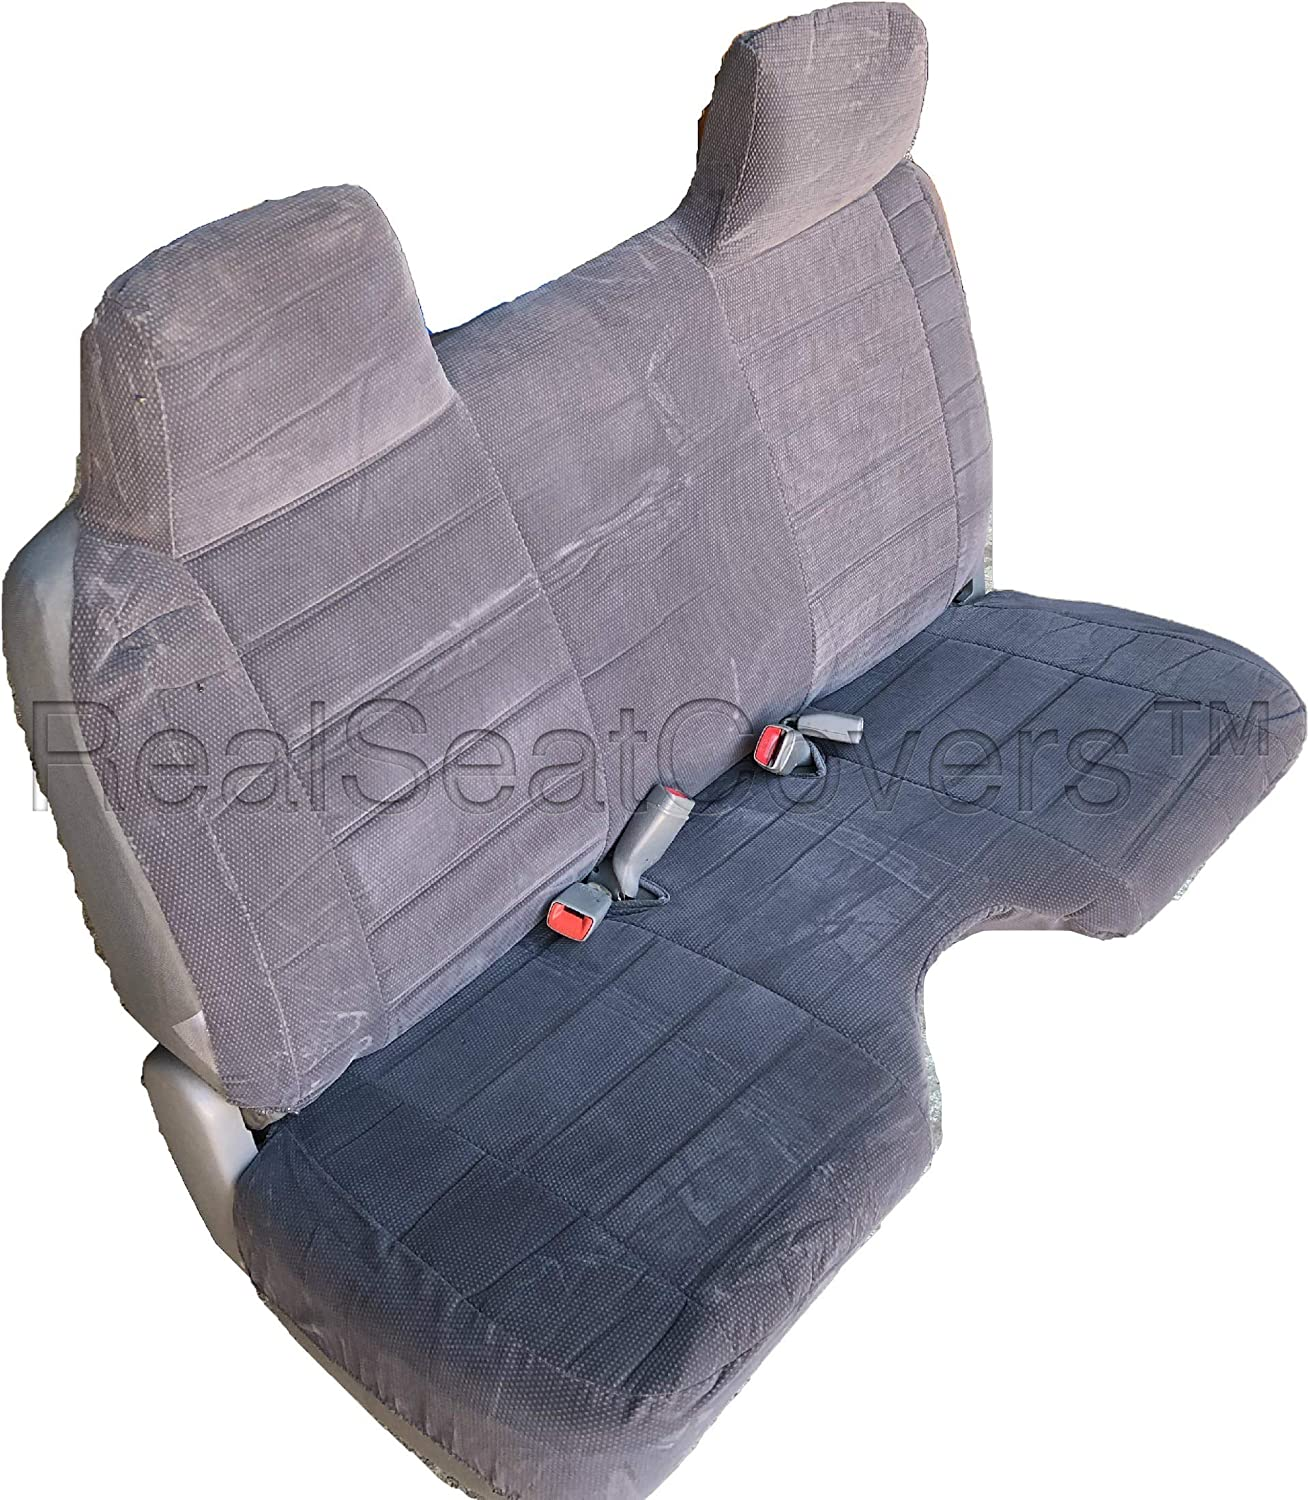 Gray RealSeatCovers for Front Bench A25 Triple Stitched Molded Headrests Small 2 to 3 Shifter Cutout Seat Cover for Toyota Pickup 1990-1995